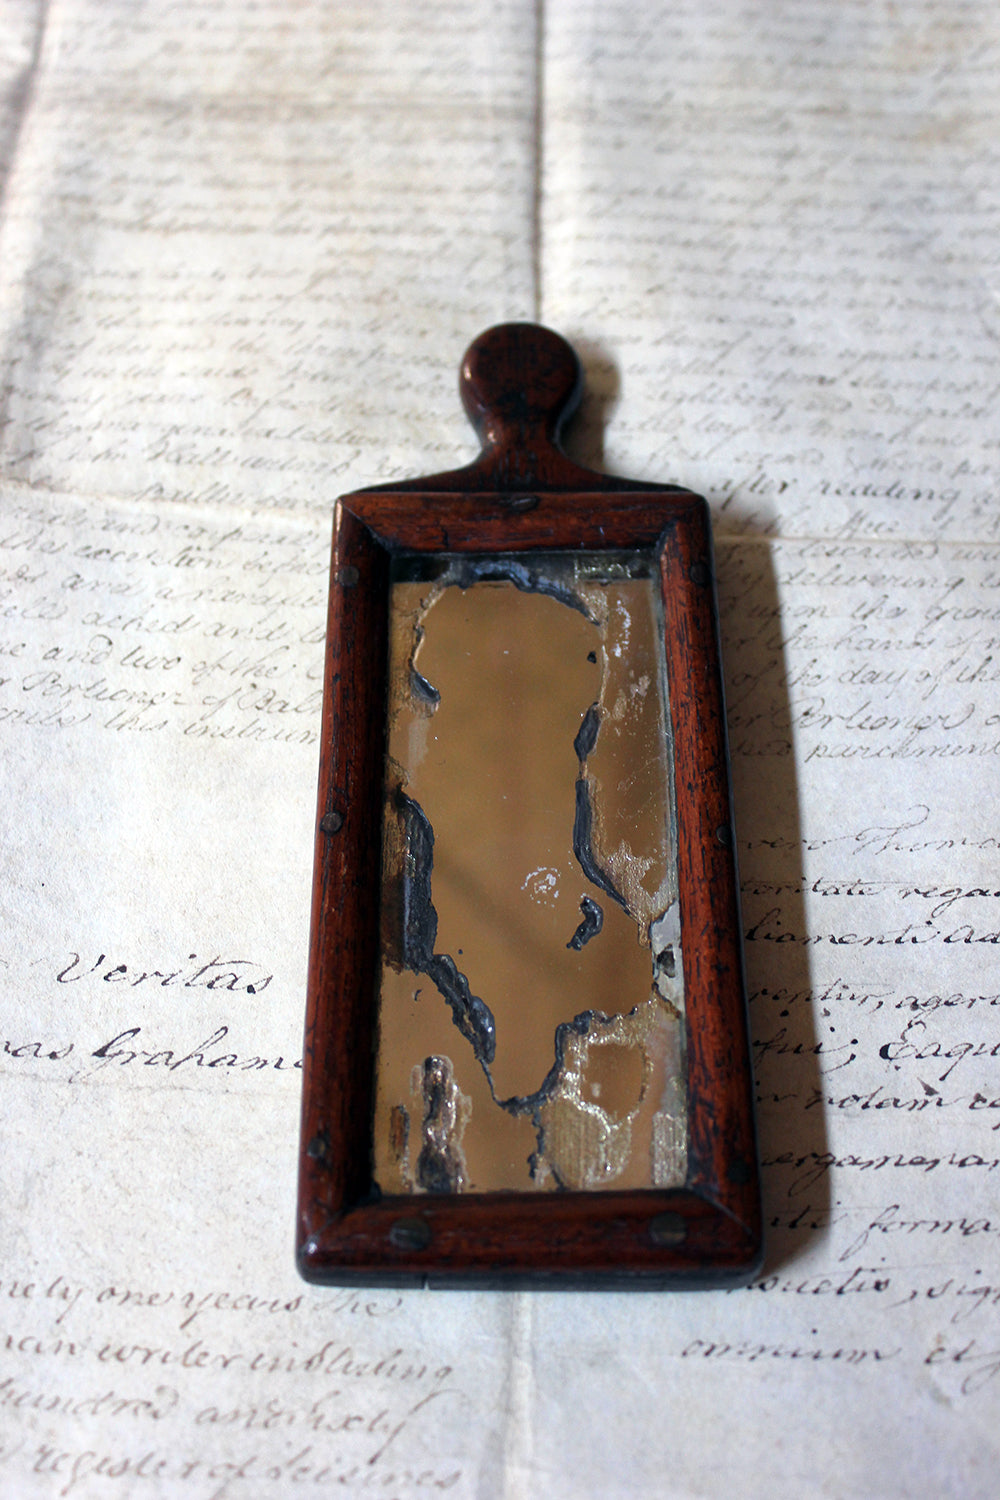 A Diminutive George III Period Hand Mirror c.1800